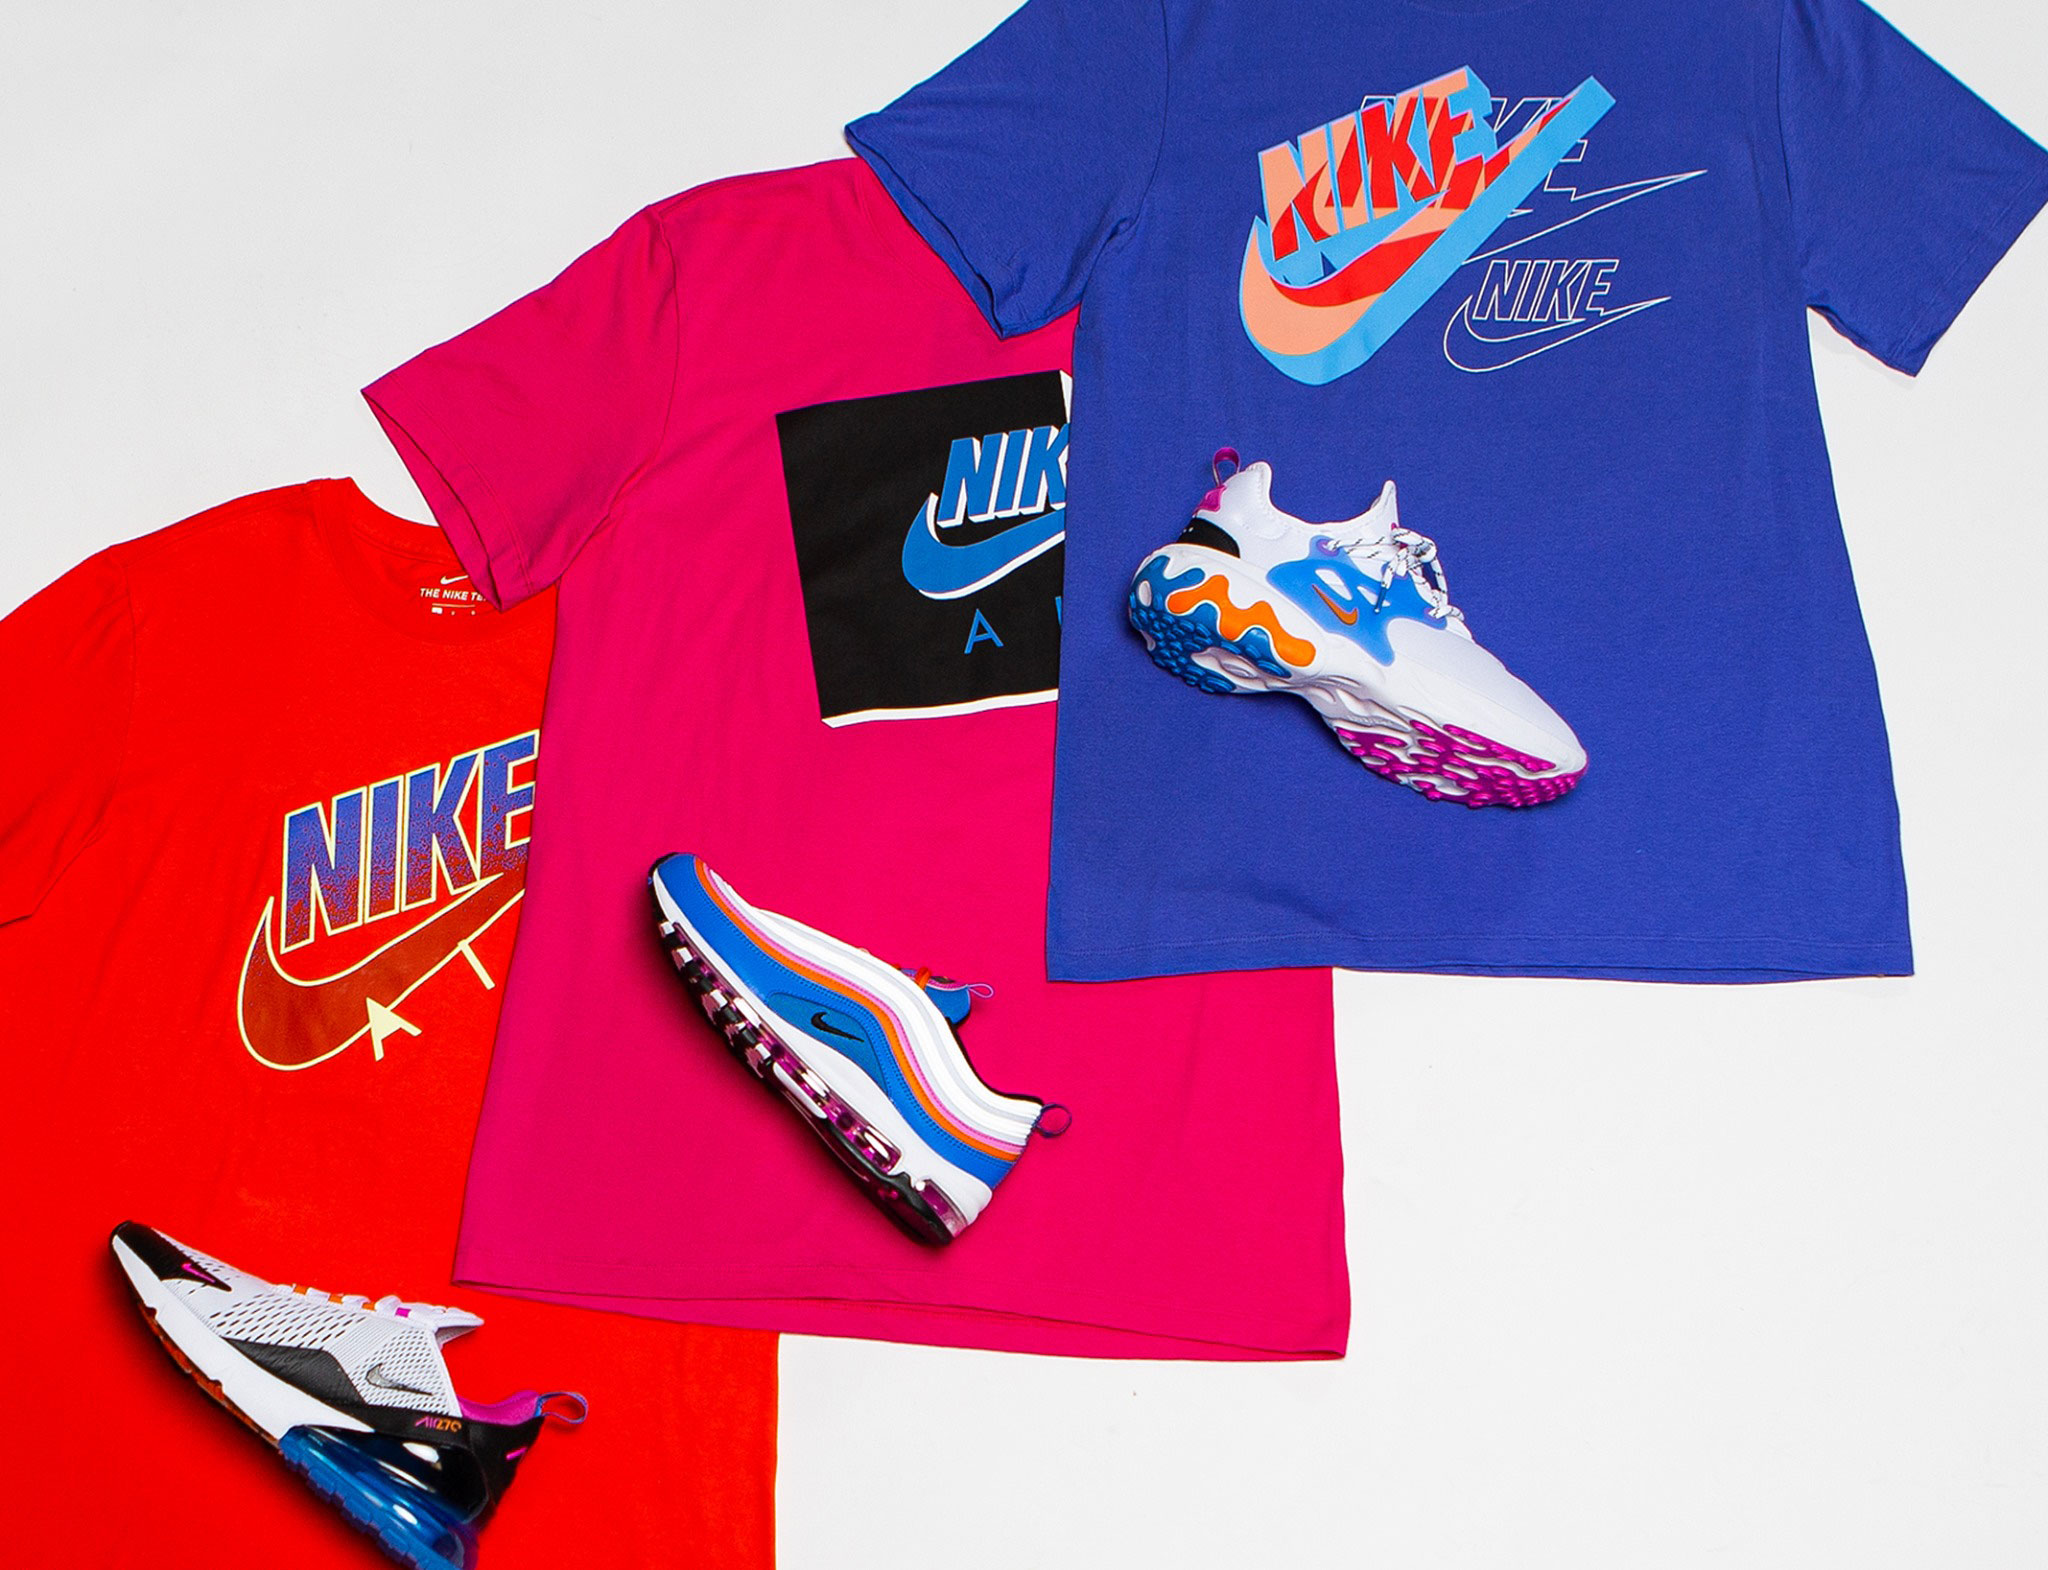 nike-air-nrg-sneakers-shirts